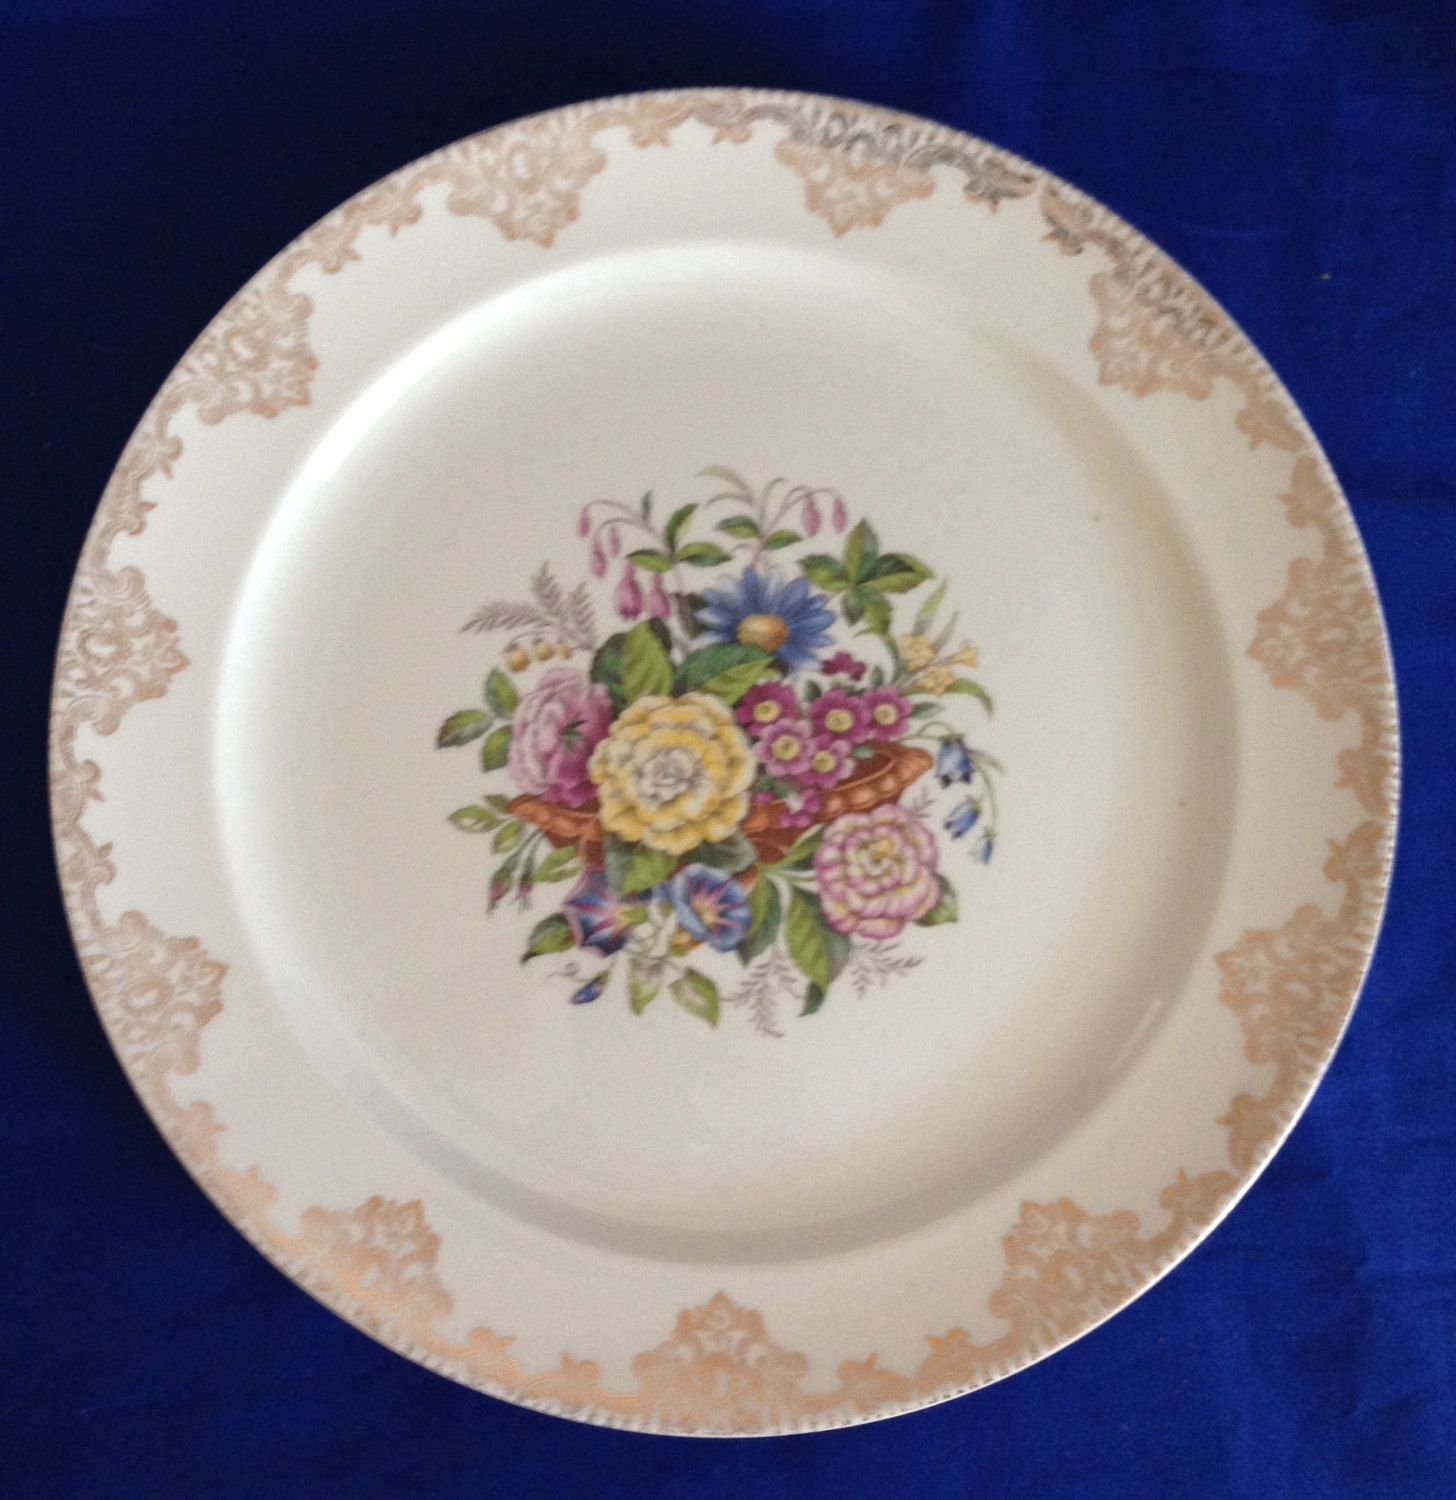 Decorative Dinner Plates 1940's Sheffield China Floral 23 Karat Gold Scroll Border